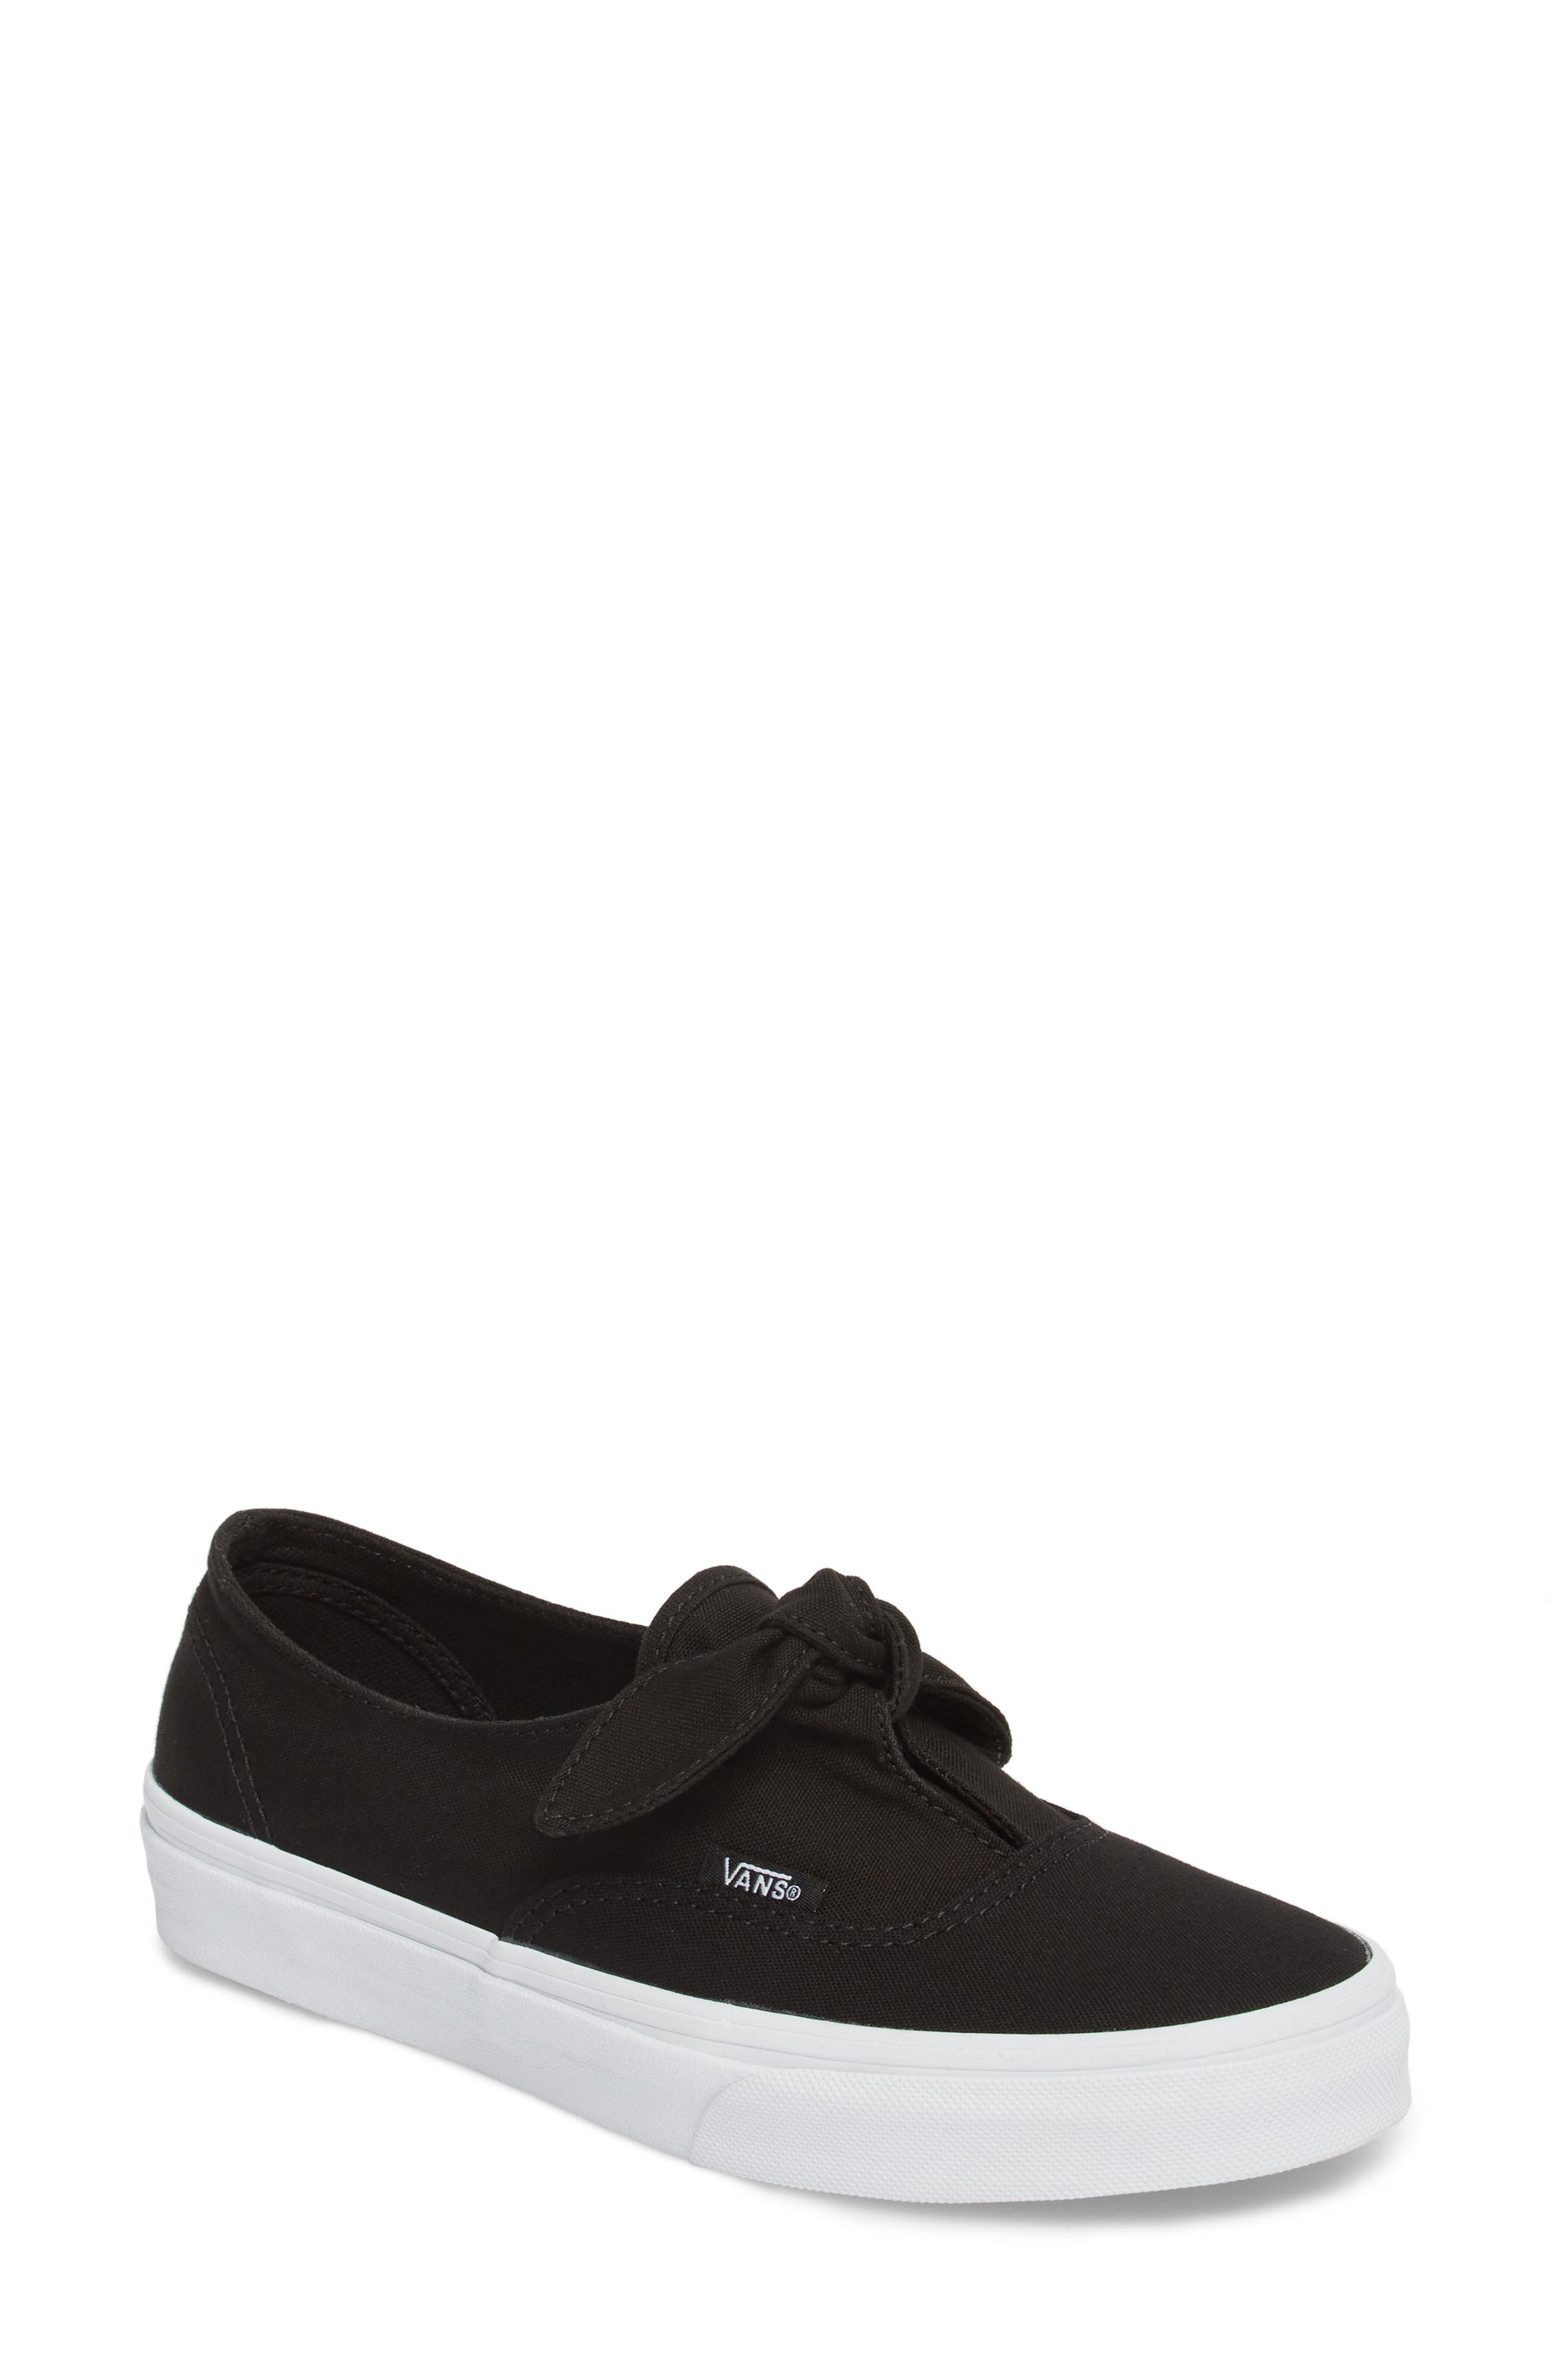 UA Authentic Knotted Slip-On Sneaker,                             Main thumbnail 1, color,                             001